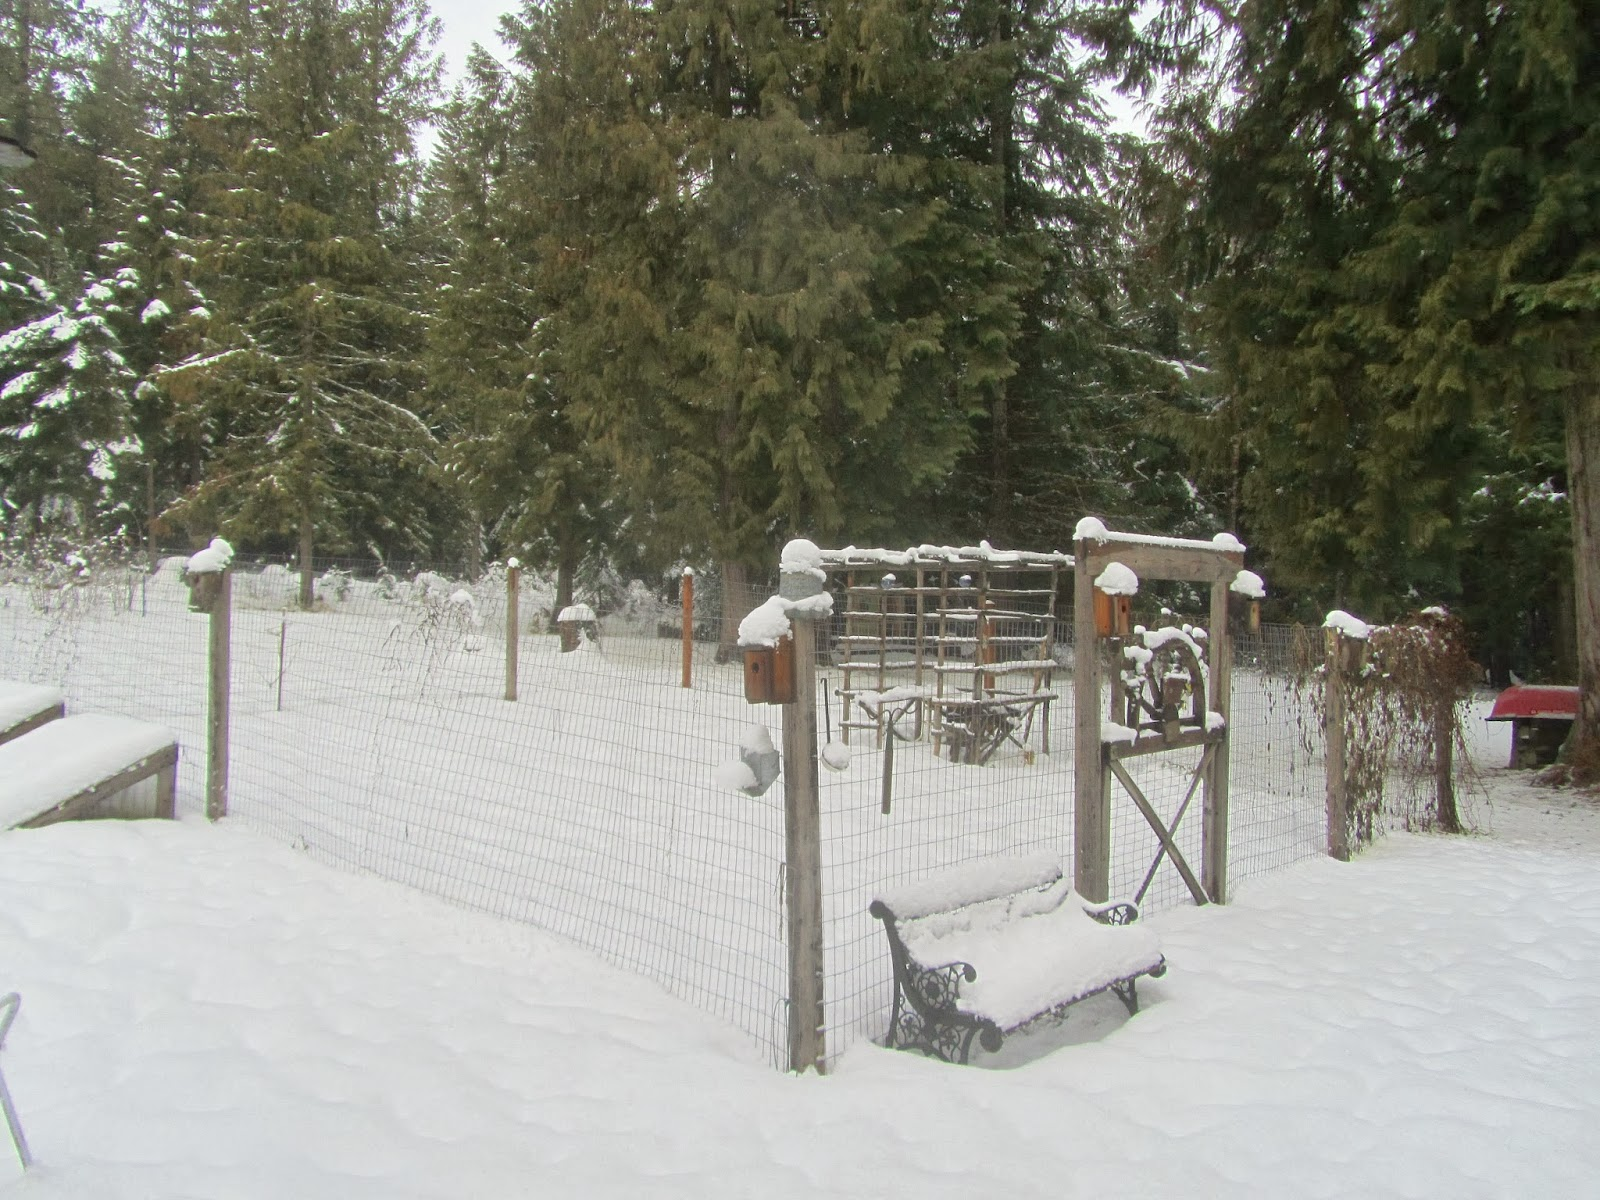 Garden in winter covered with snow